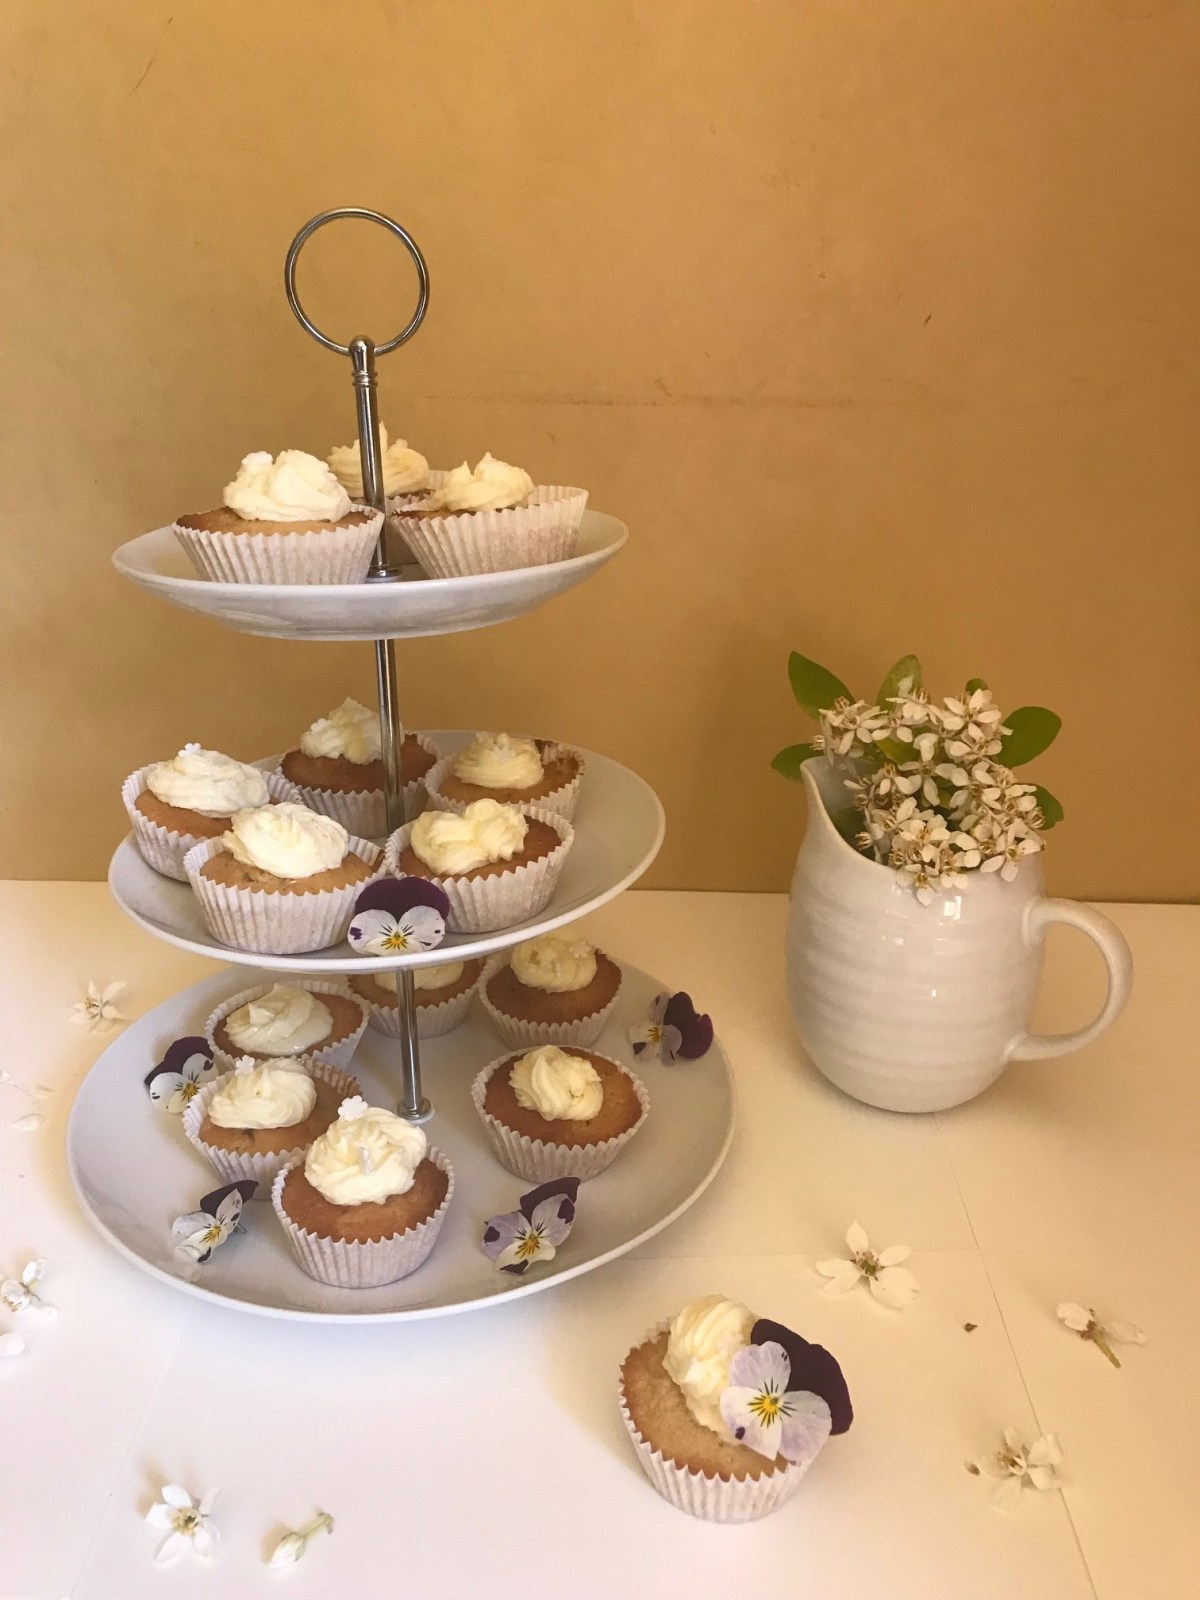 Elderflower and Lemon Cupcakes